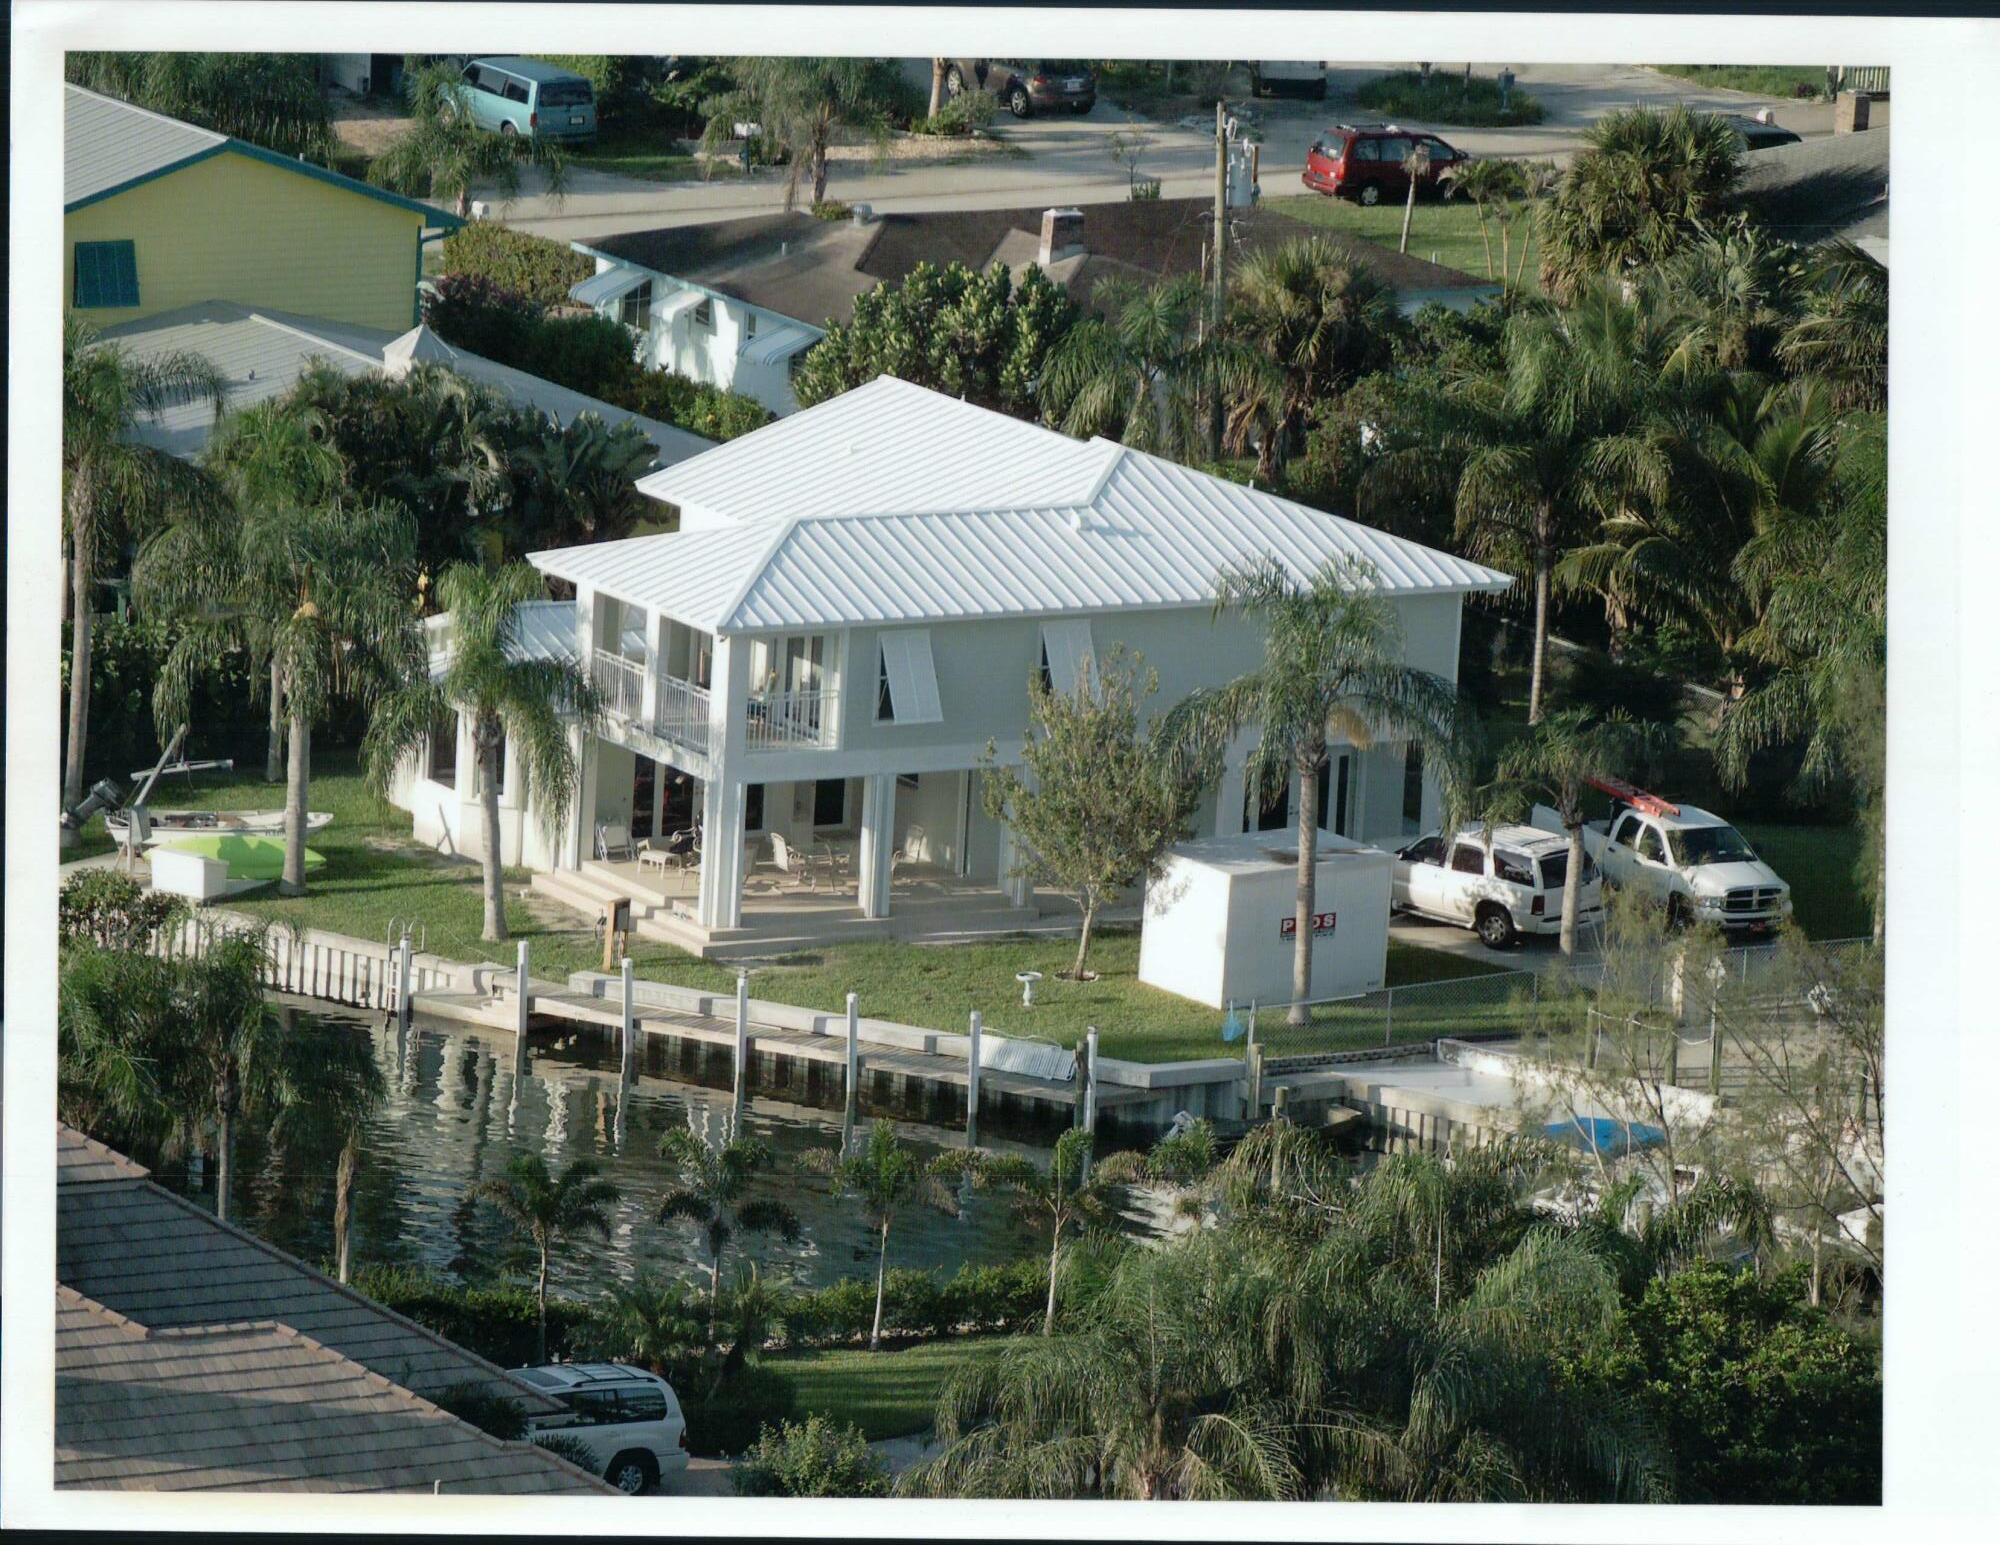 This 2 story Key West style 3-bedroom, 3-bath home situated on a tranquil protected canal just off the intracoastal. Just minutes from Jupiter Inlet. Oversized lot with 105' canal frontage with boat and jet ski lifts. Generator and security cameras. Main floor features open concept floor plan with Chef's style kitchen featuring a large cooking island with stainless range hood and appliances. Guest suite with full bath. Second floor features a large master suite with his & her walk-in closets and large master bath. Vaulted ceiling and large balcony over-looking the intracoastal waterway. Second bedroom with full bath. An optional room for office or crafts. This home is a perfect oasis for entertaining outdoors and a boating lifestyle. Conveniently located near shopping and recreation.